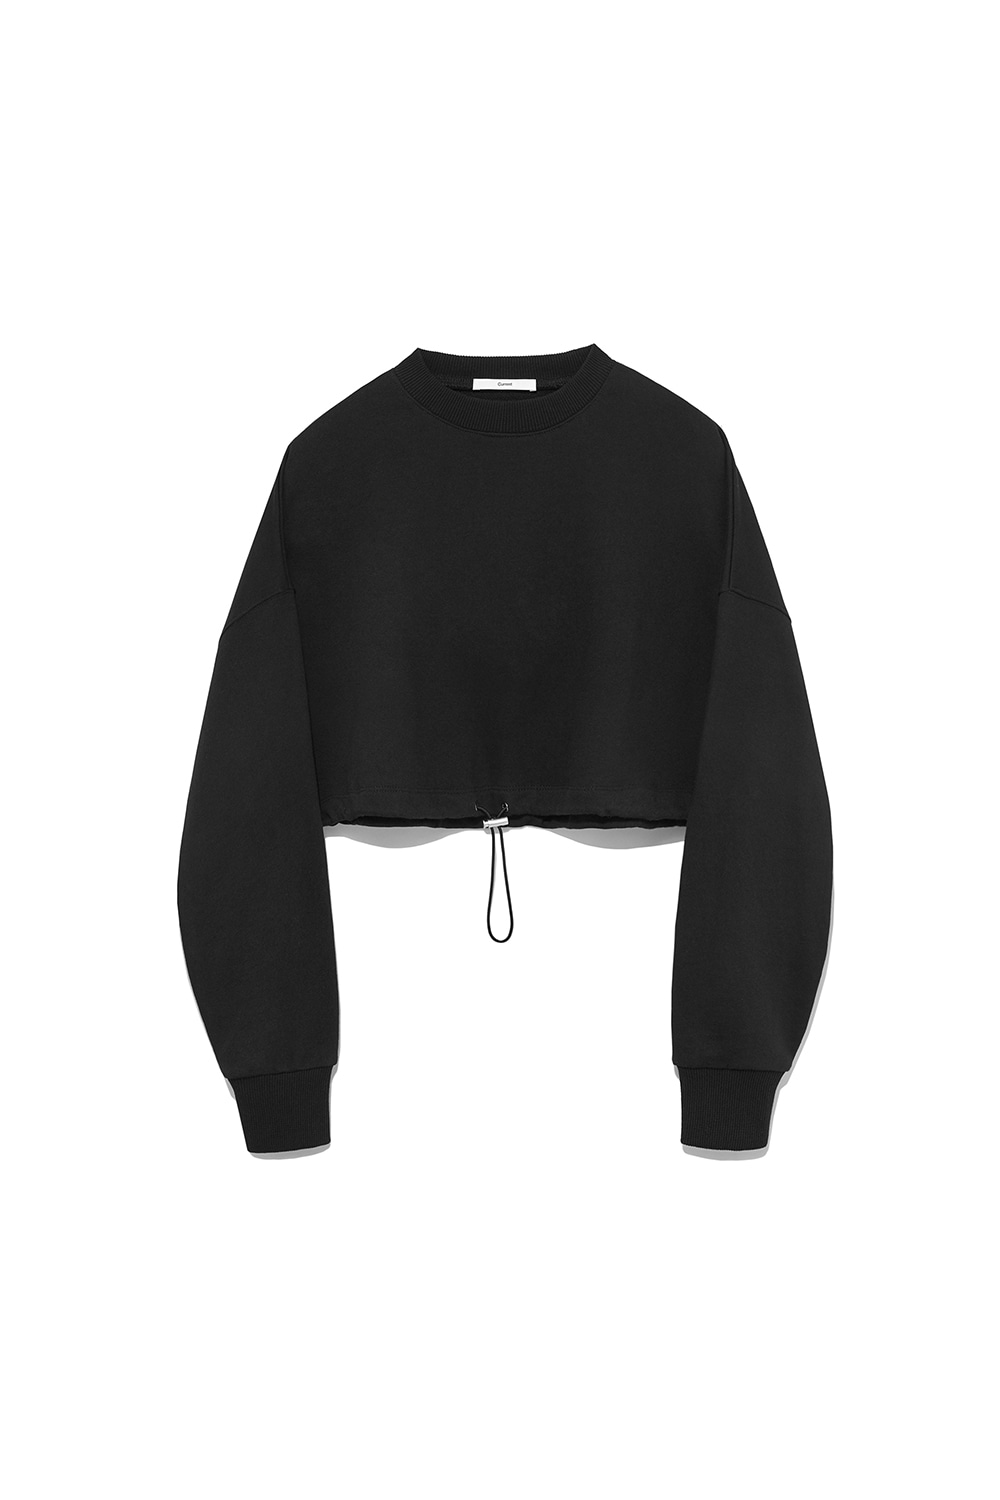 Crop String Sweatshirt Women [Black]